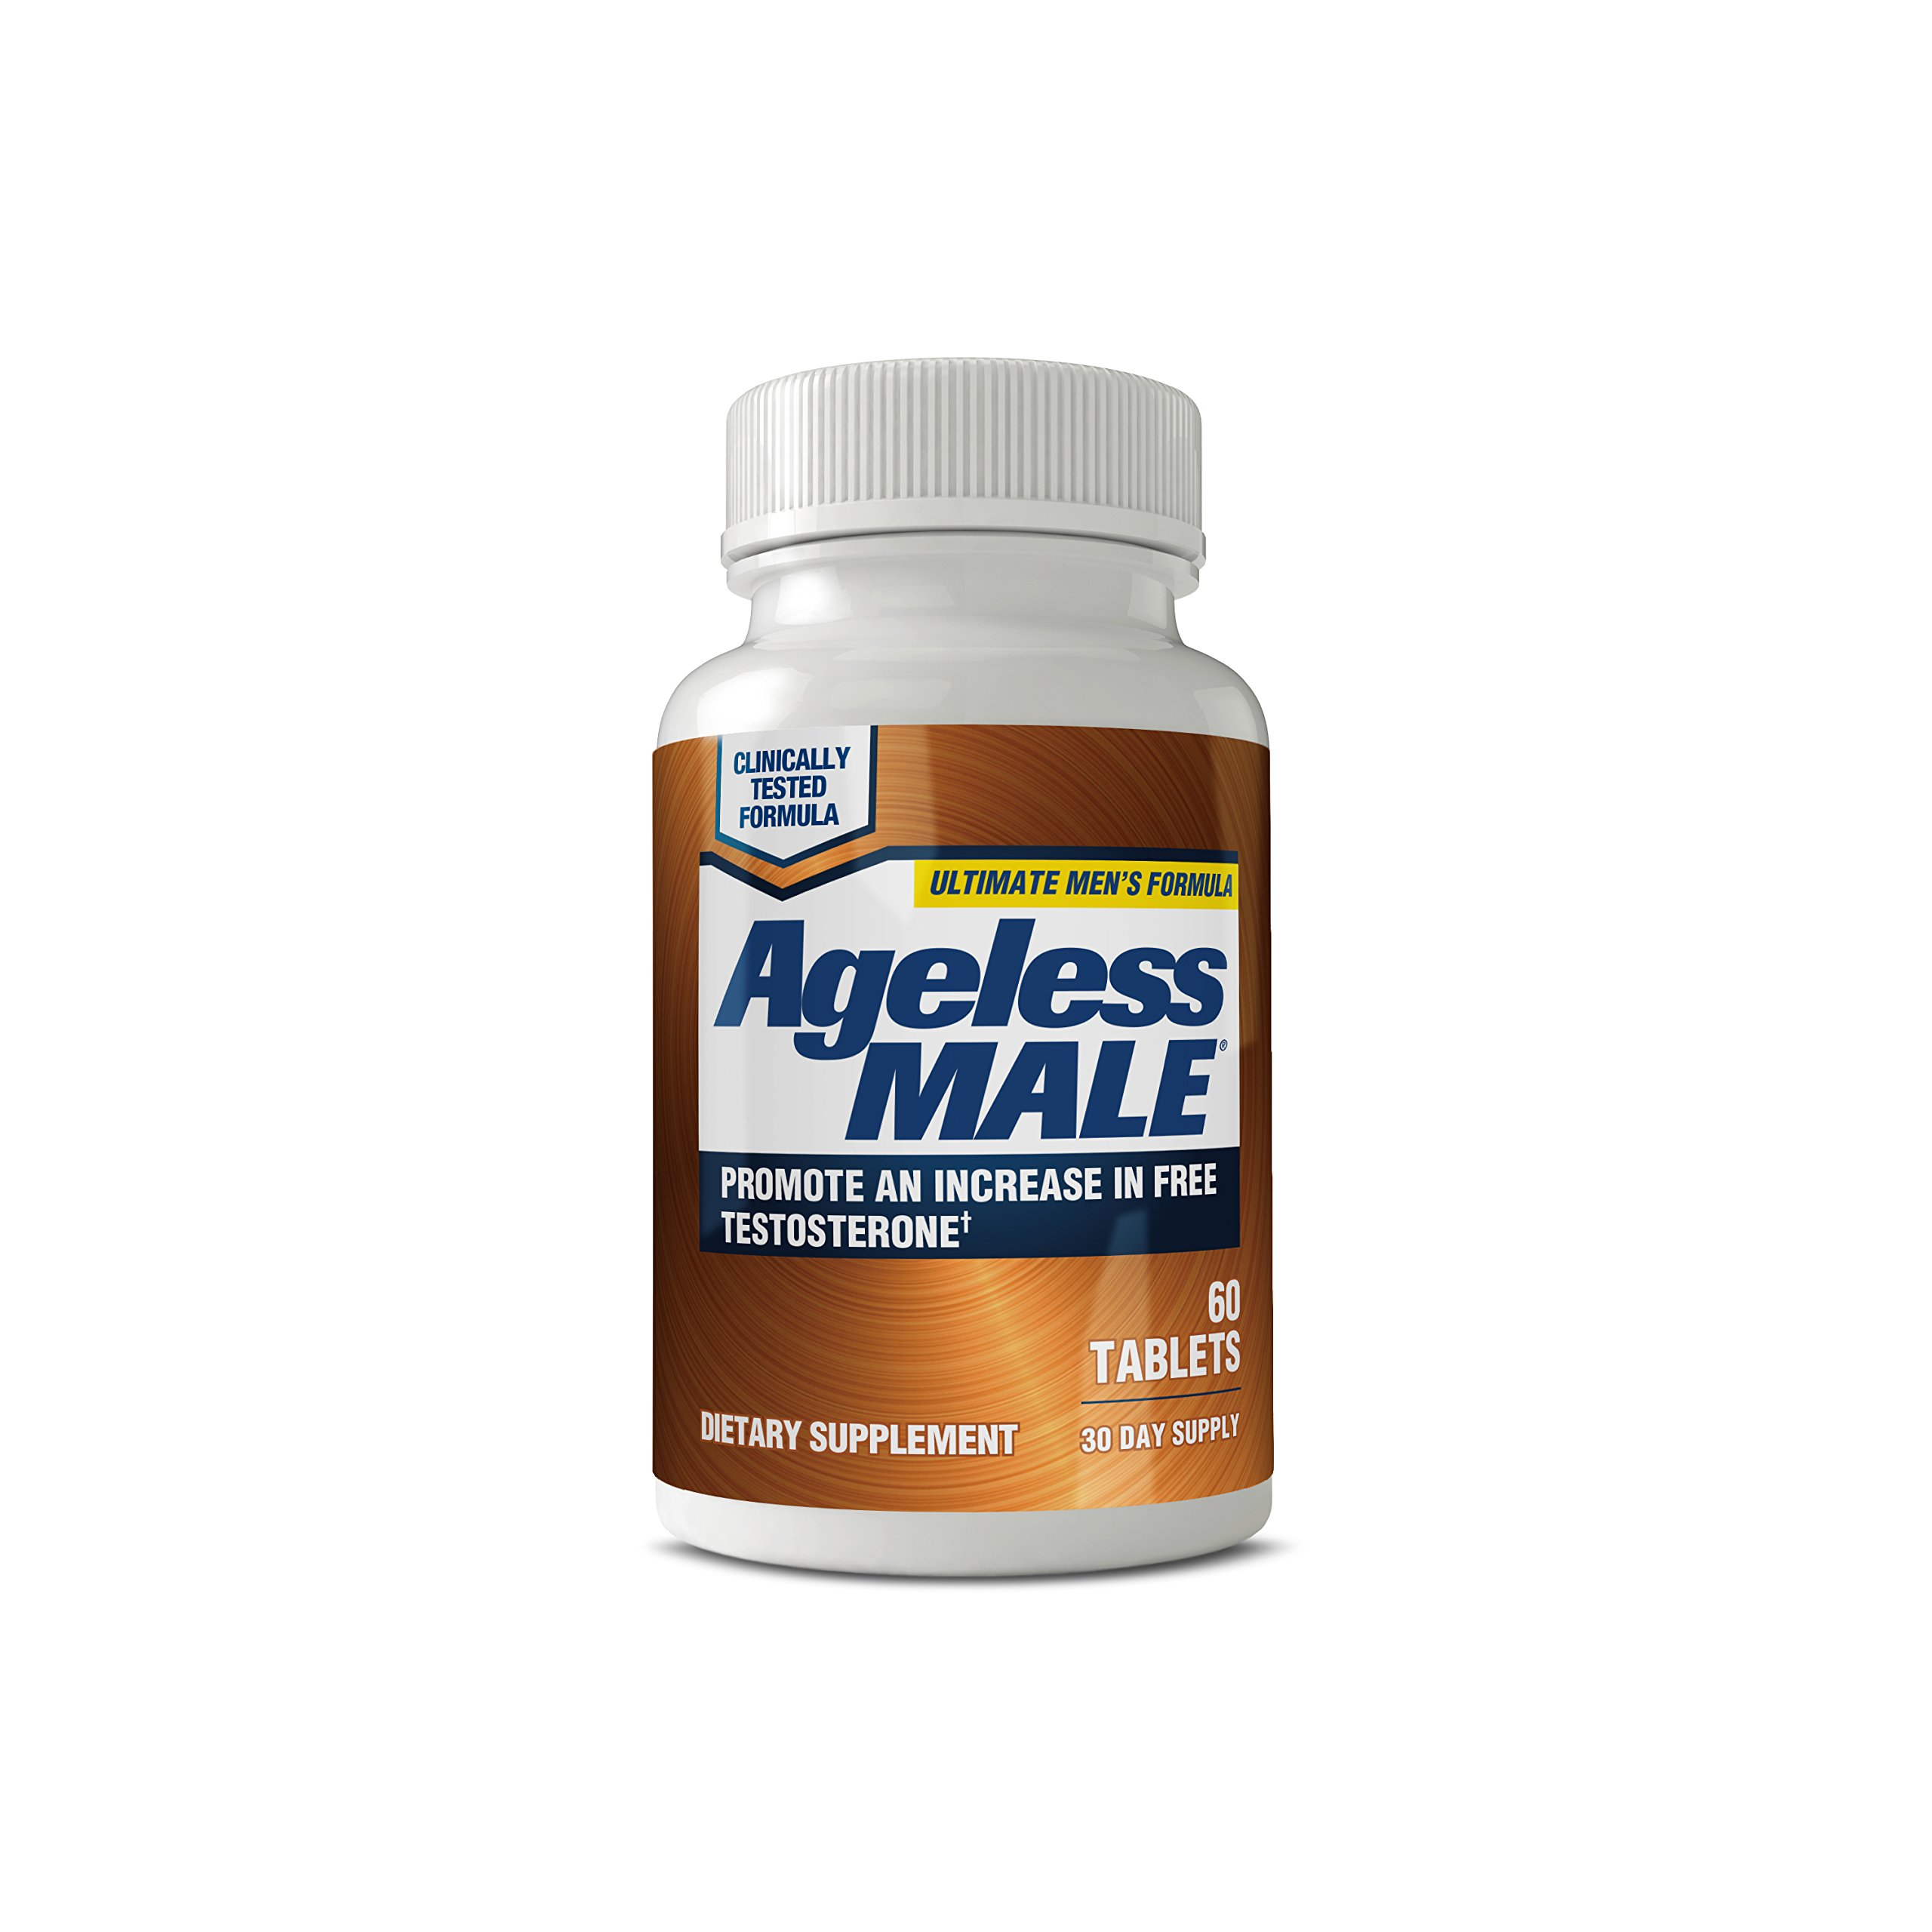 Ageless Male Testosterone Booster Supplement for Muscle Growth & Sex Drive + E-BOOK! (60 Tablets)